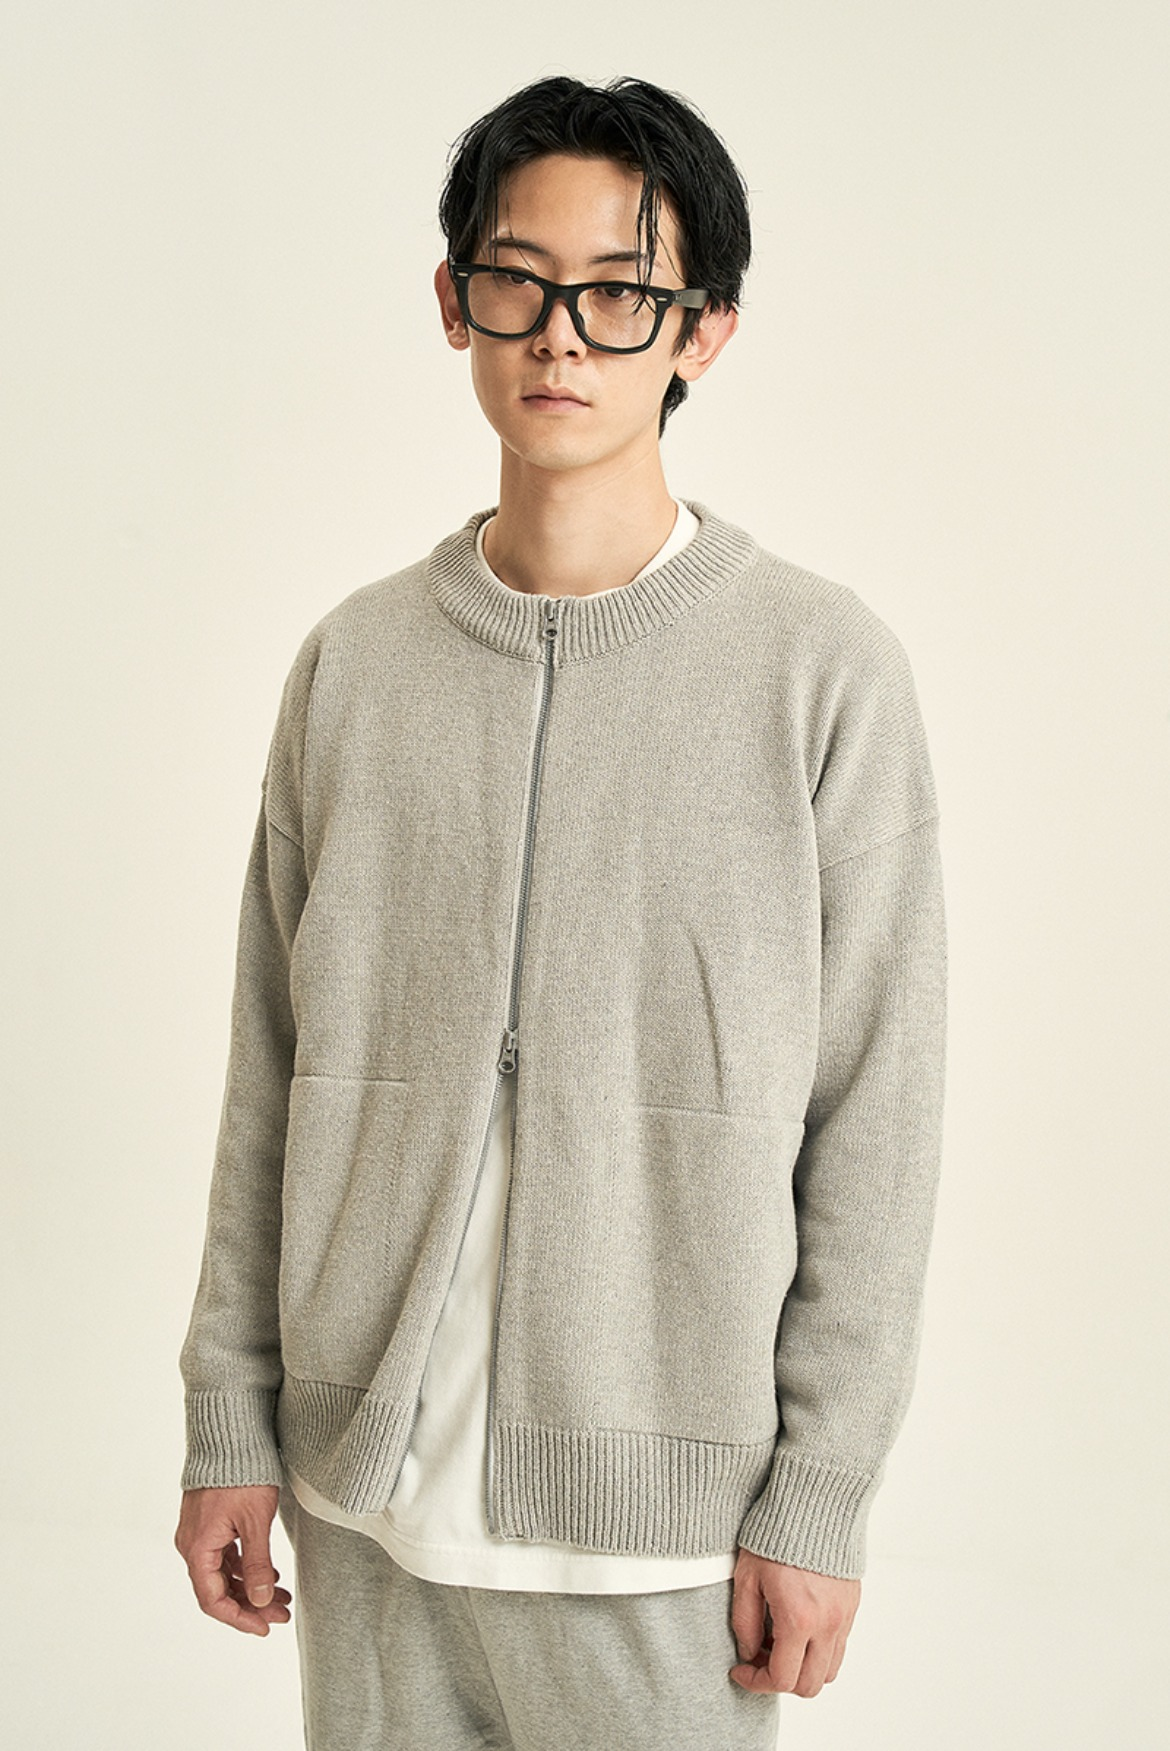 2way Round Neck Cardigan [Grey]